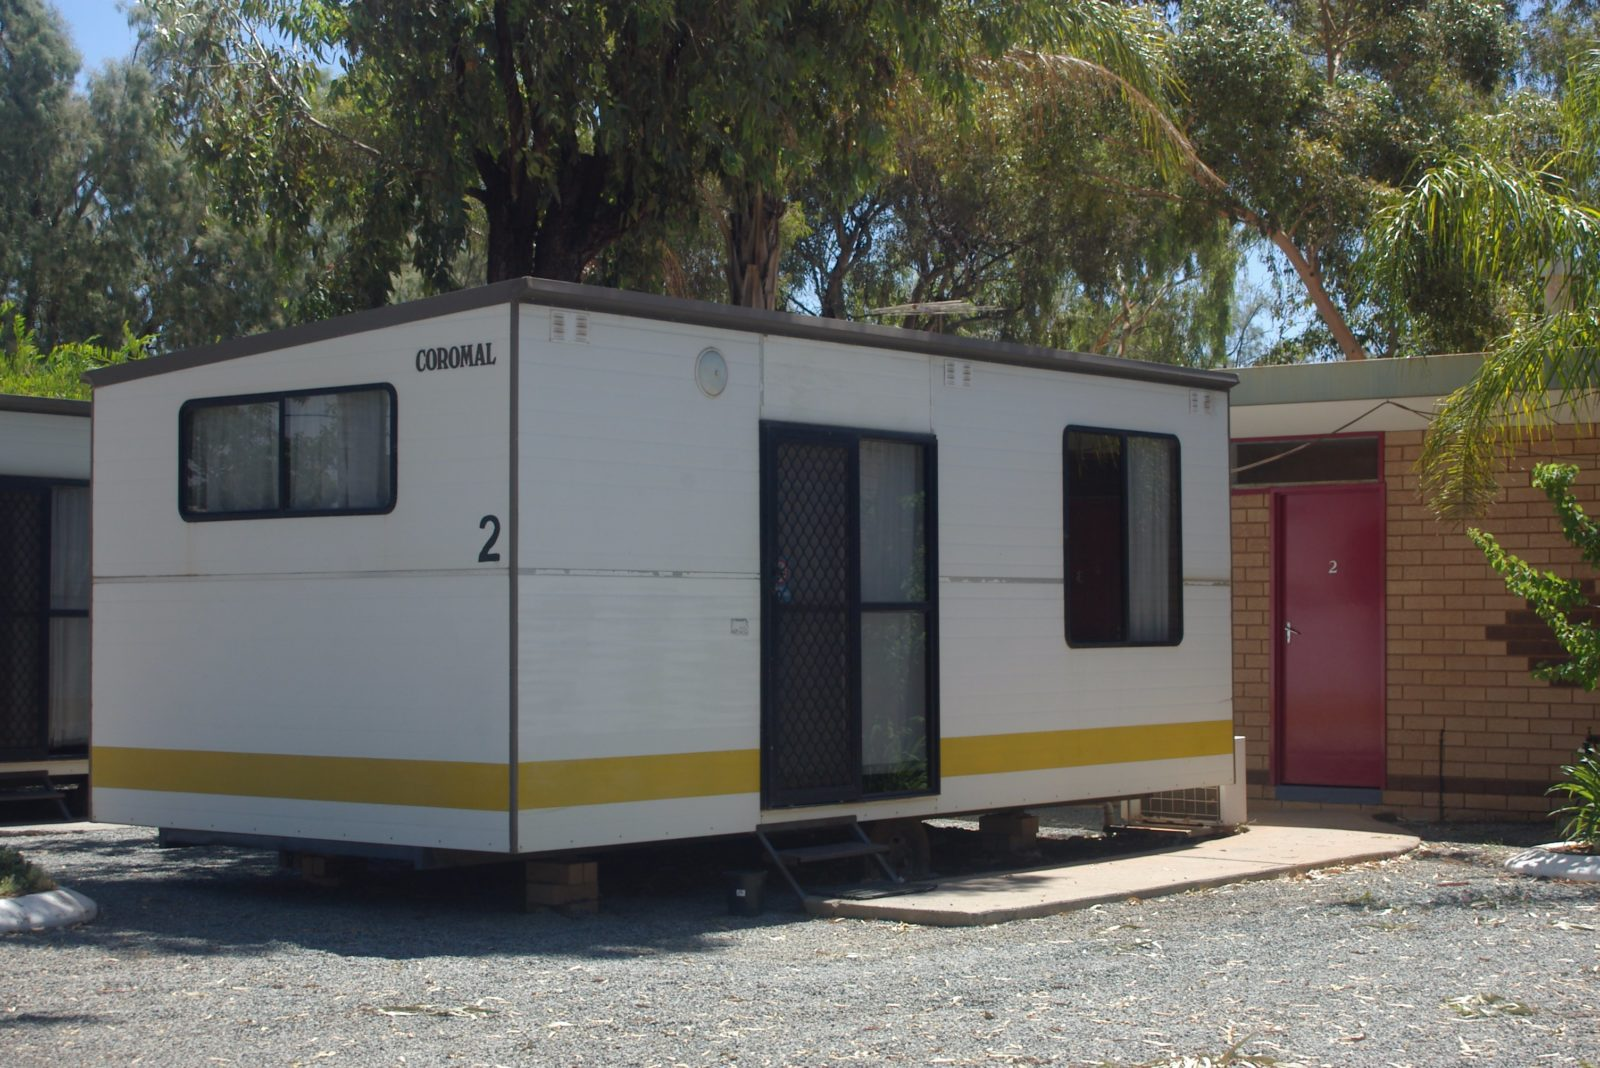 Acclaim Goldminer Tourist Caravan Park, Somerville, Western Australia